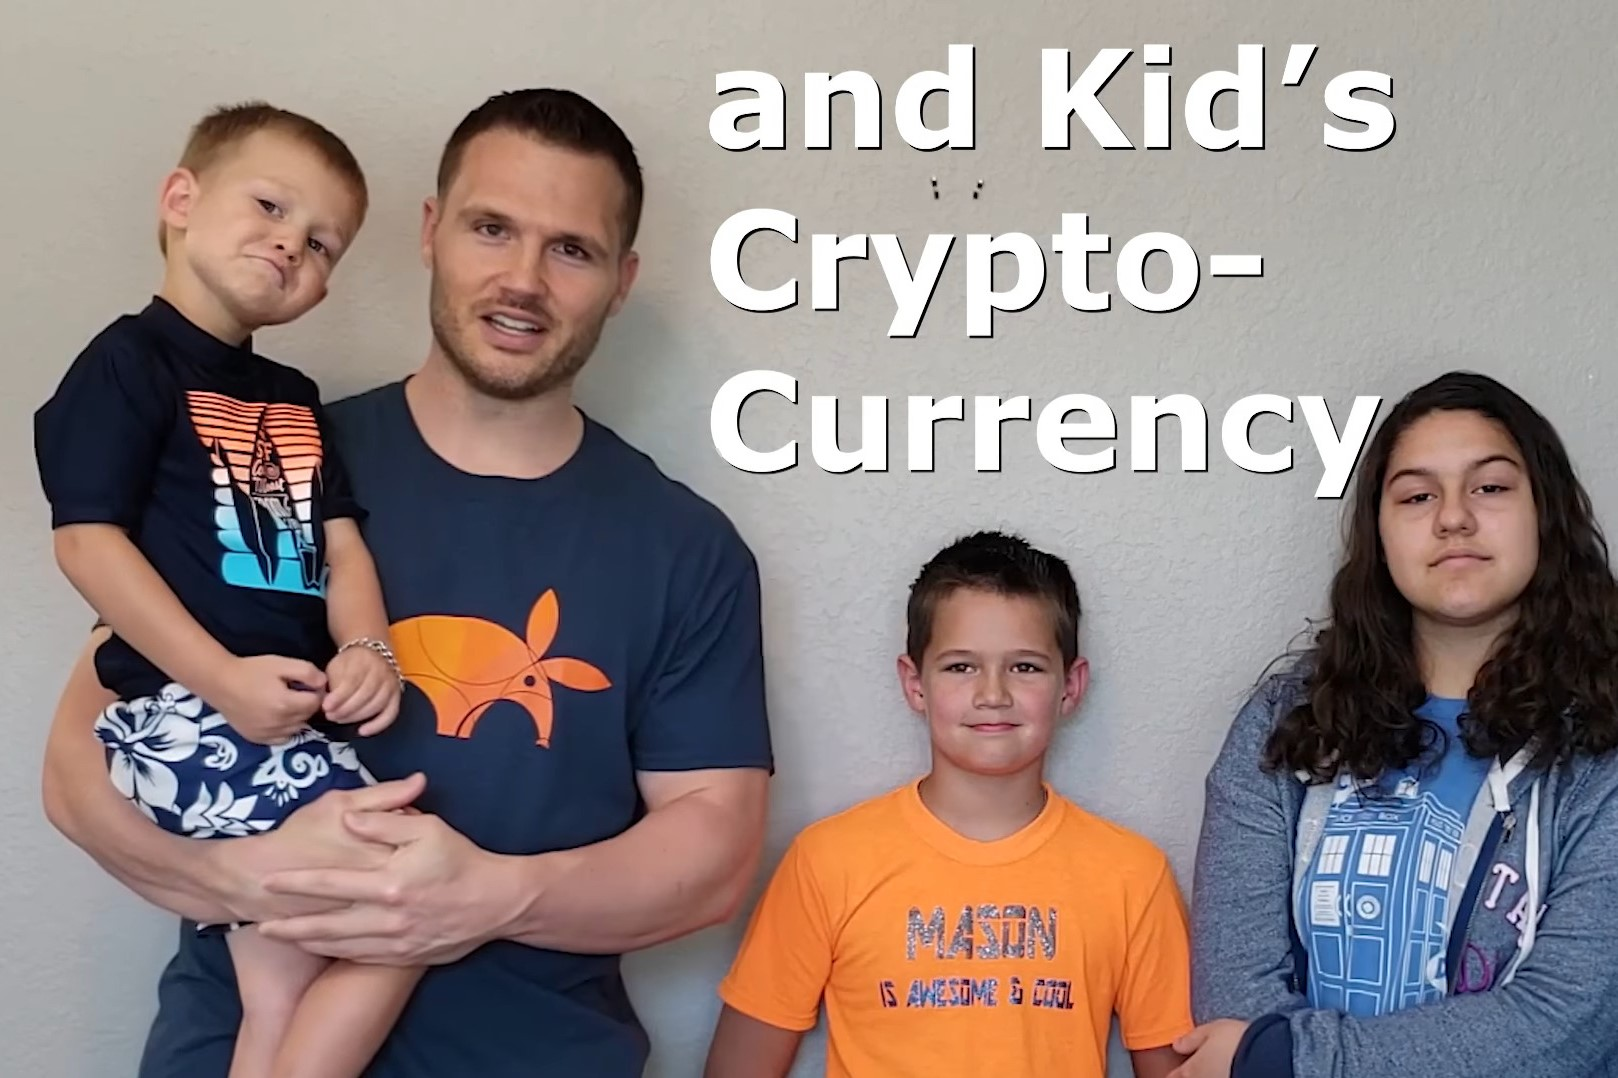 Times for kids cryptocurrency